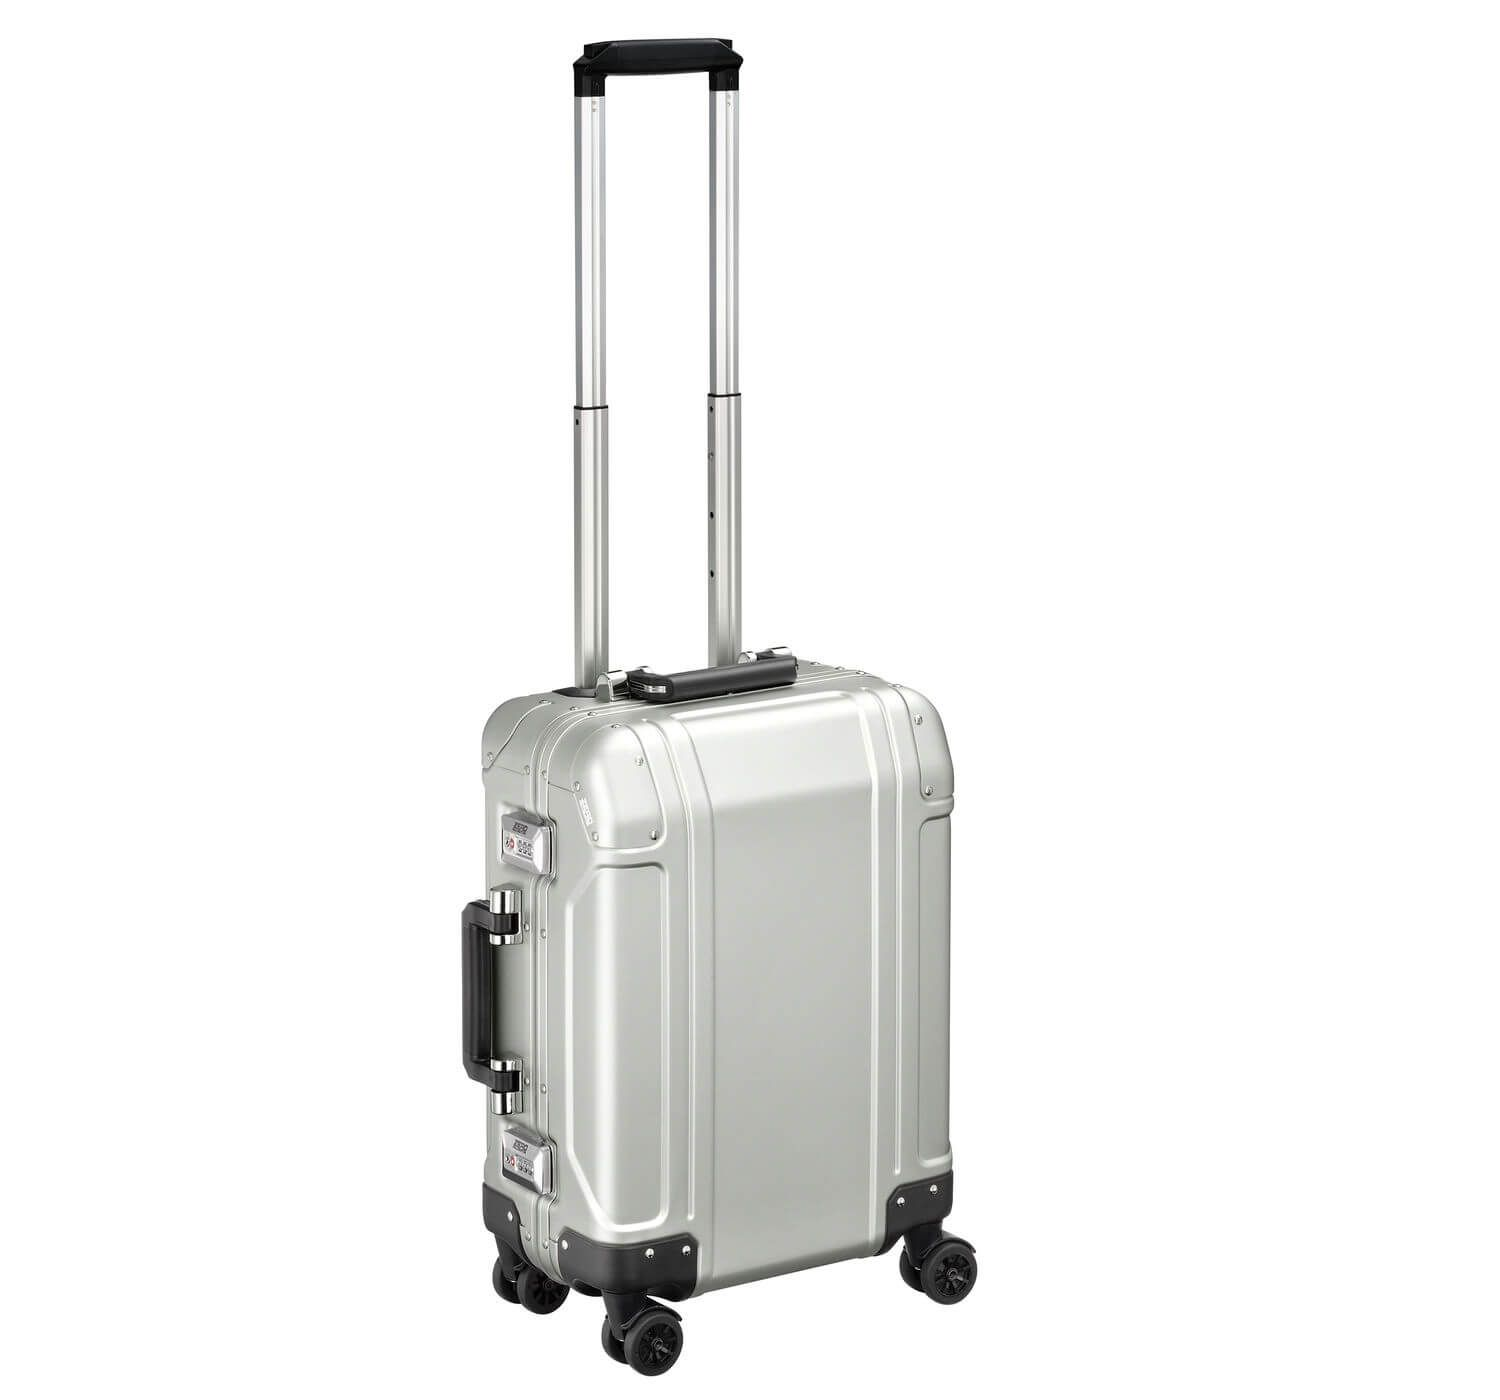 Geo Aluminum 2.0 - Carry-on 4-Wheel Spinner Luggage - фото 1